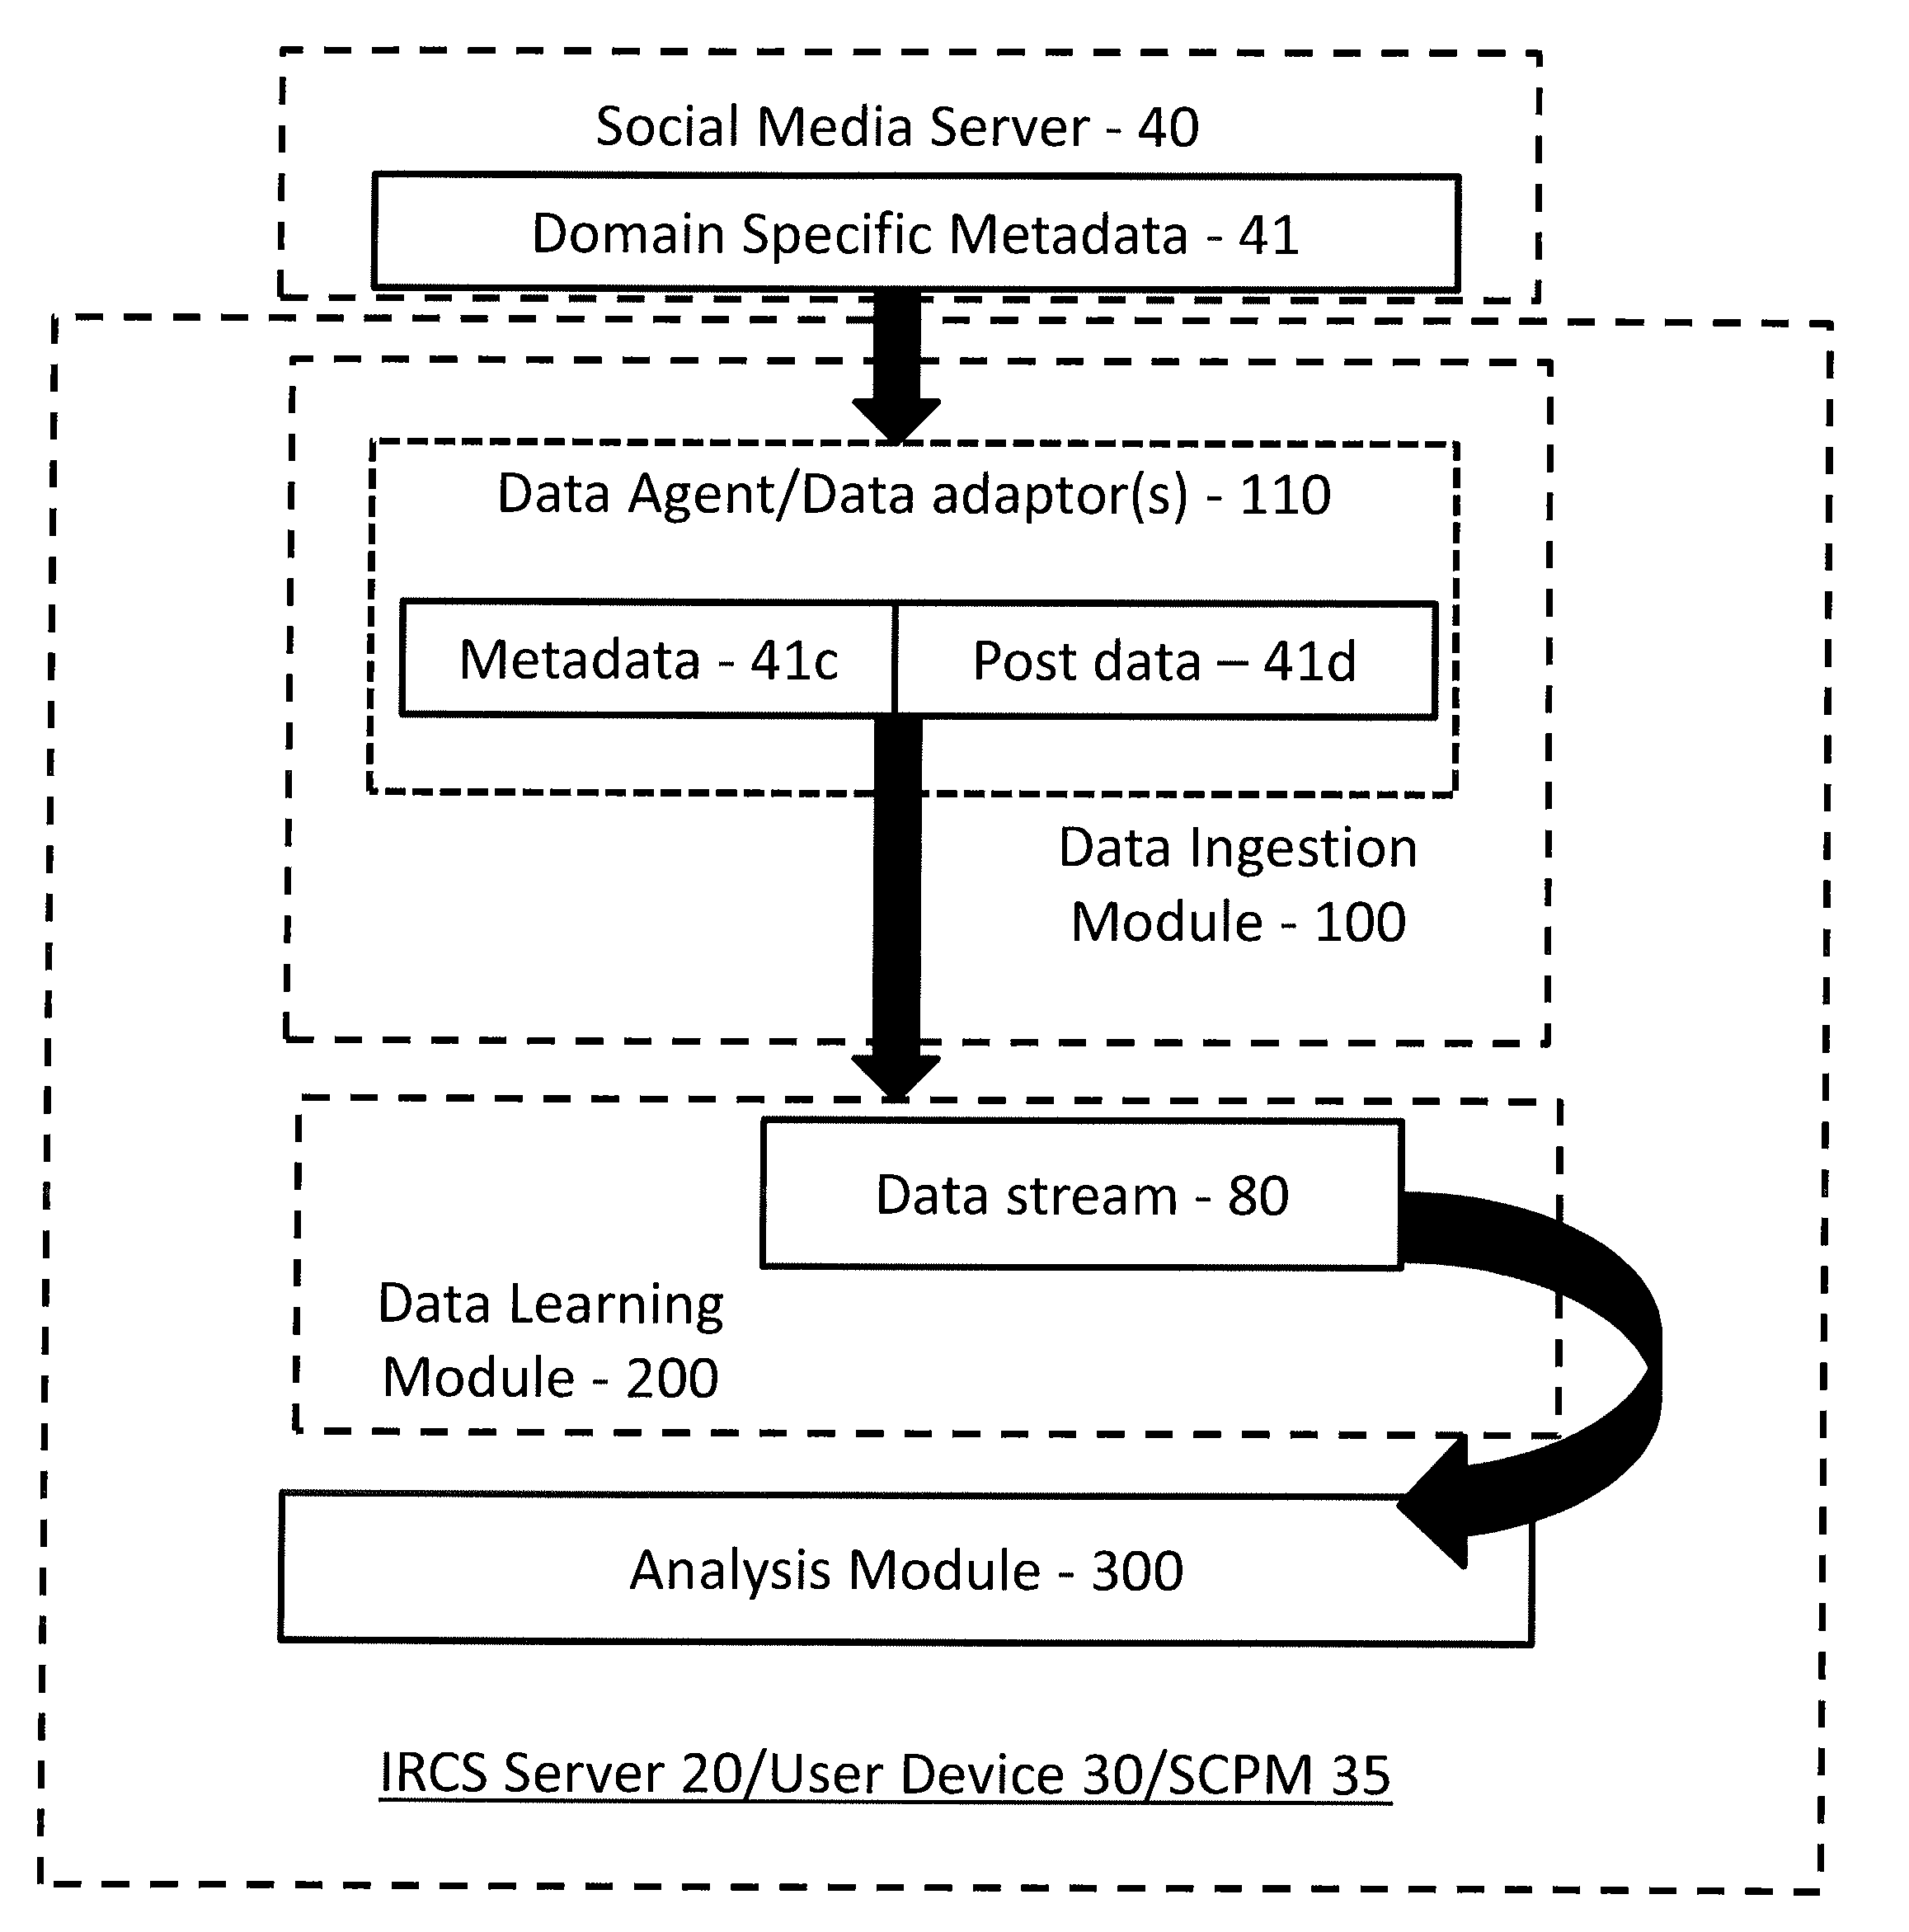 System and Method for Searching and Matching Content Over Social Networks Relevant to an Individual  - US-2017293864-A1